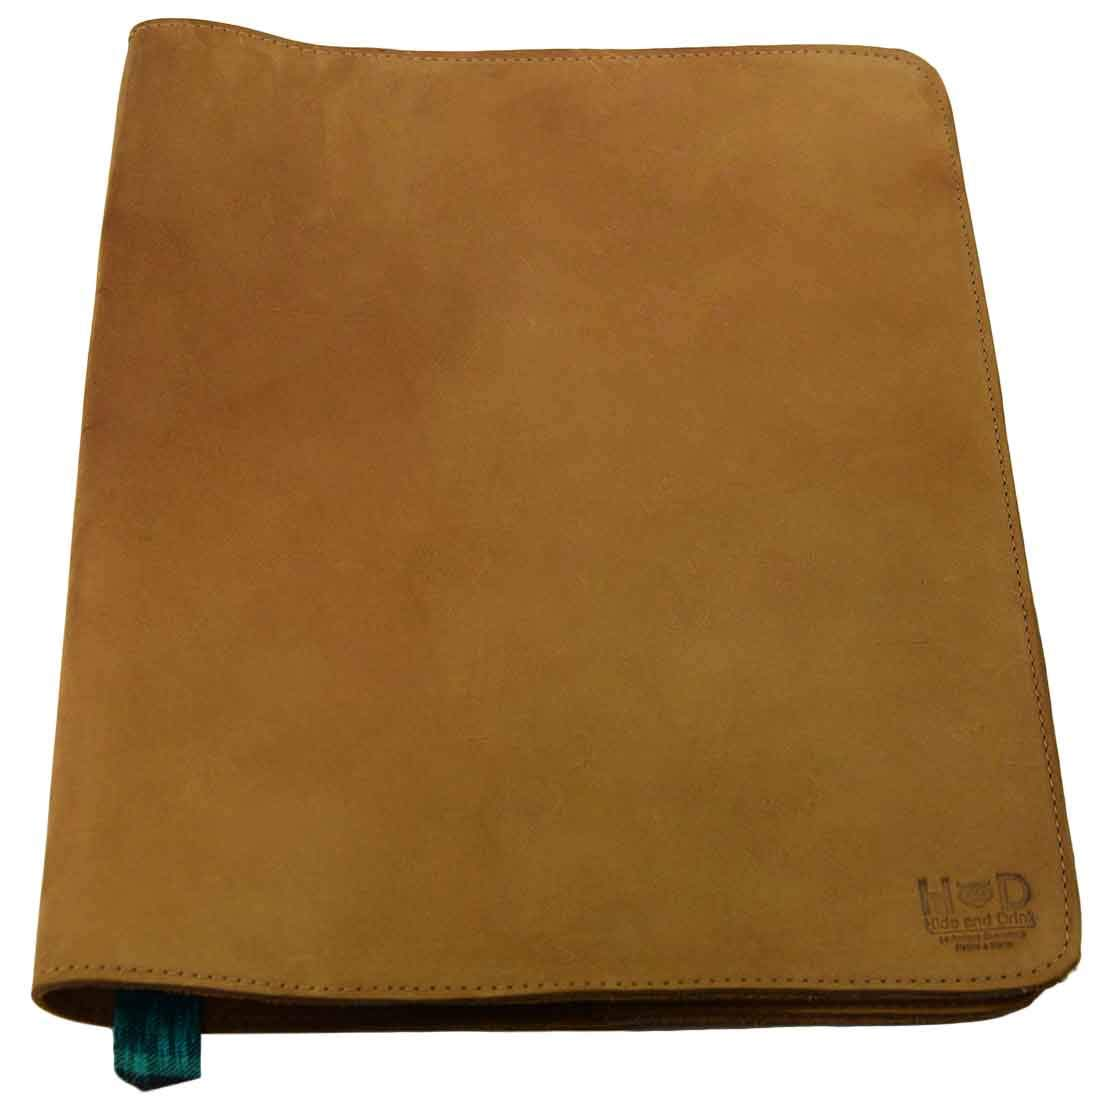 Hide & Drink, Rustic Leather Refillable Journal Cover (Size 8.5 x 11 in.) / Moleskine Cahier XXL Journals w/Típico Strap Handmade :: Old Tobacco